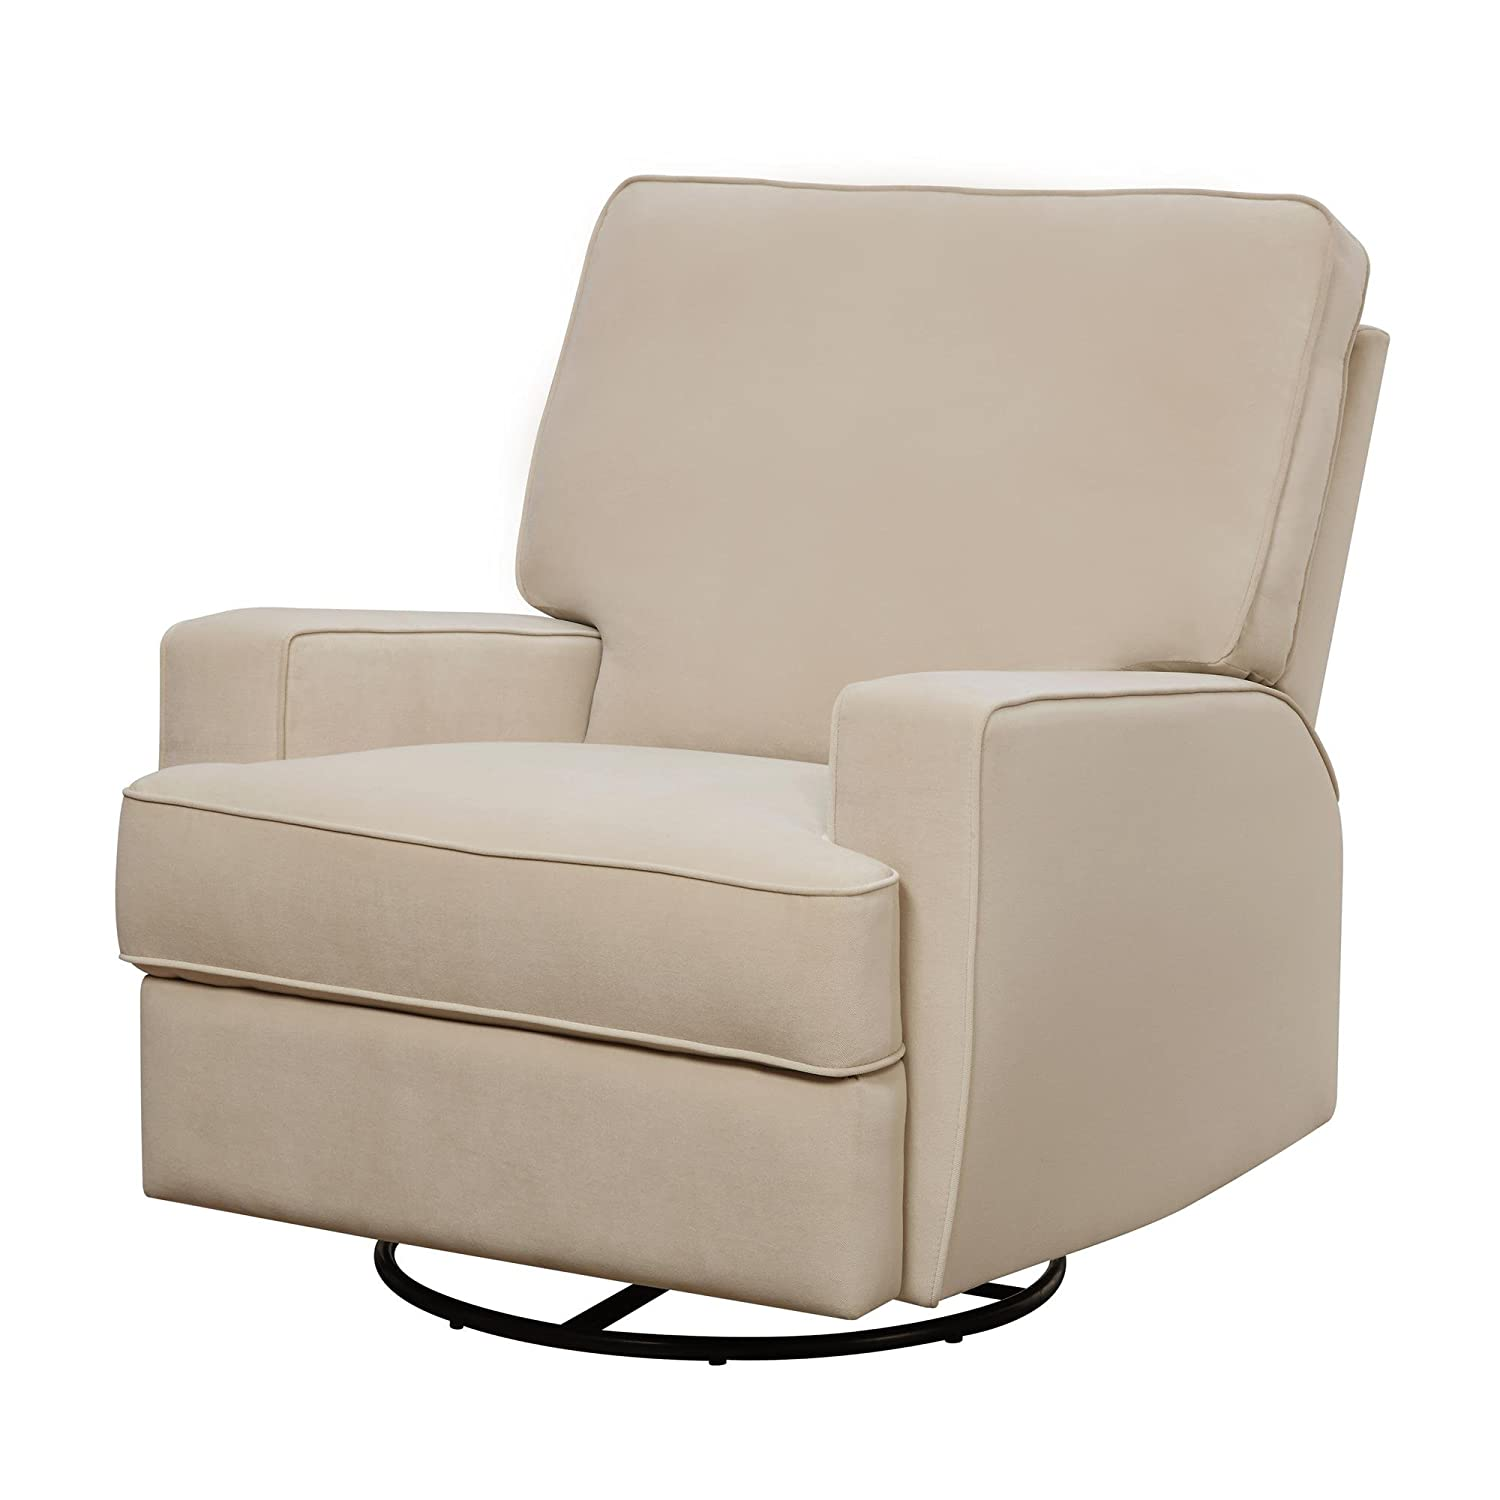 Glider chair for nursery - Baby Relax Rylan Swivel Gliding Recliner Beige